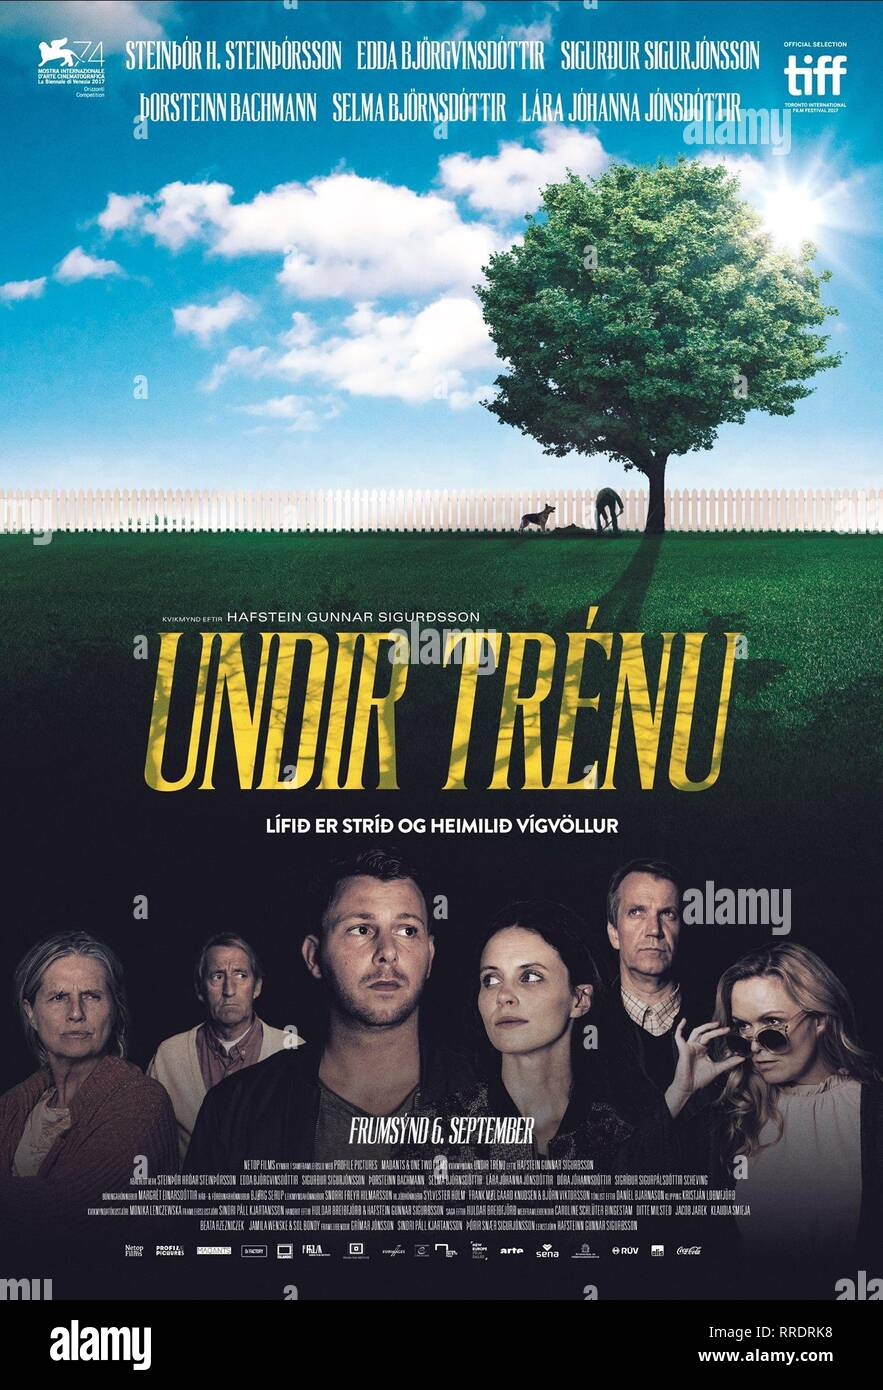 UNDER THE TREE, MOVIE POSTER, 2017 - Stock Image